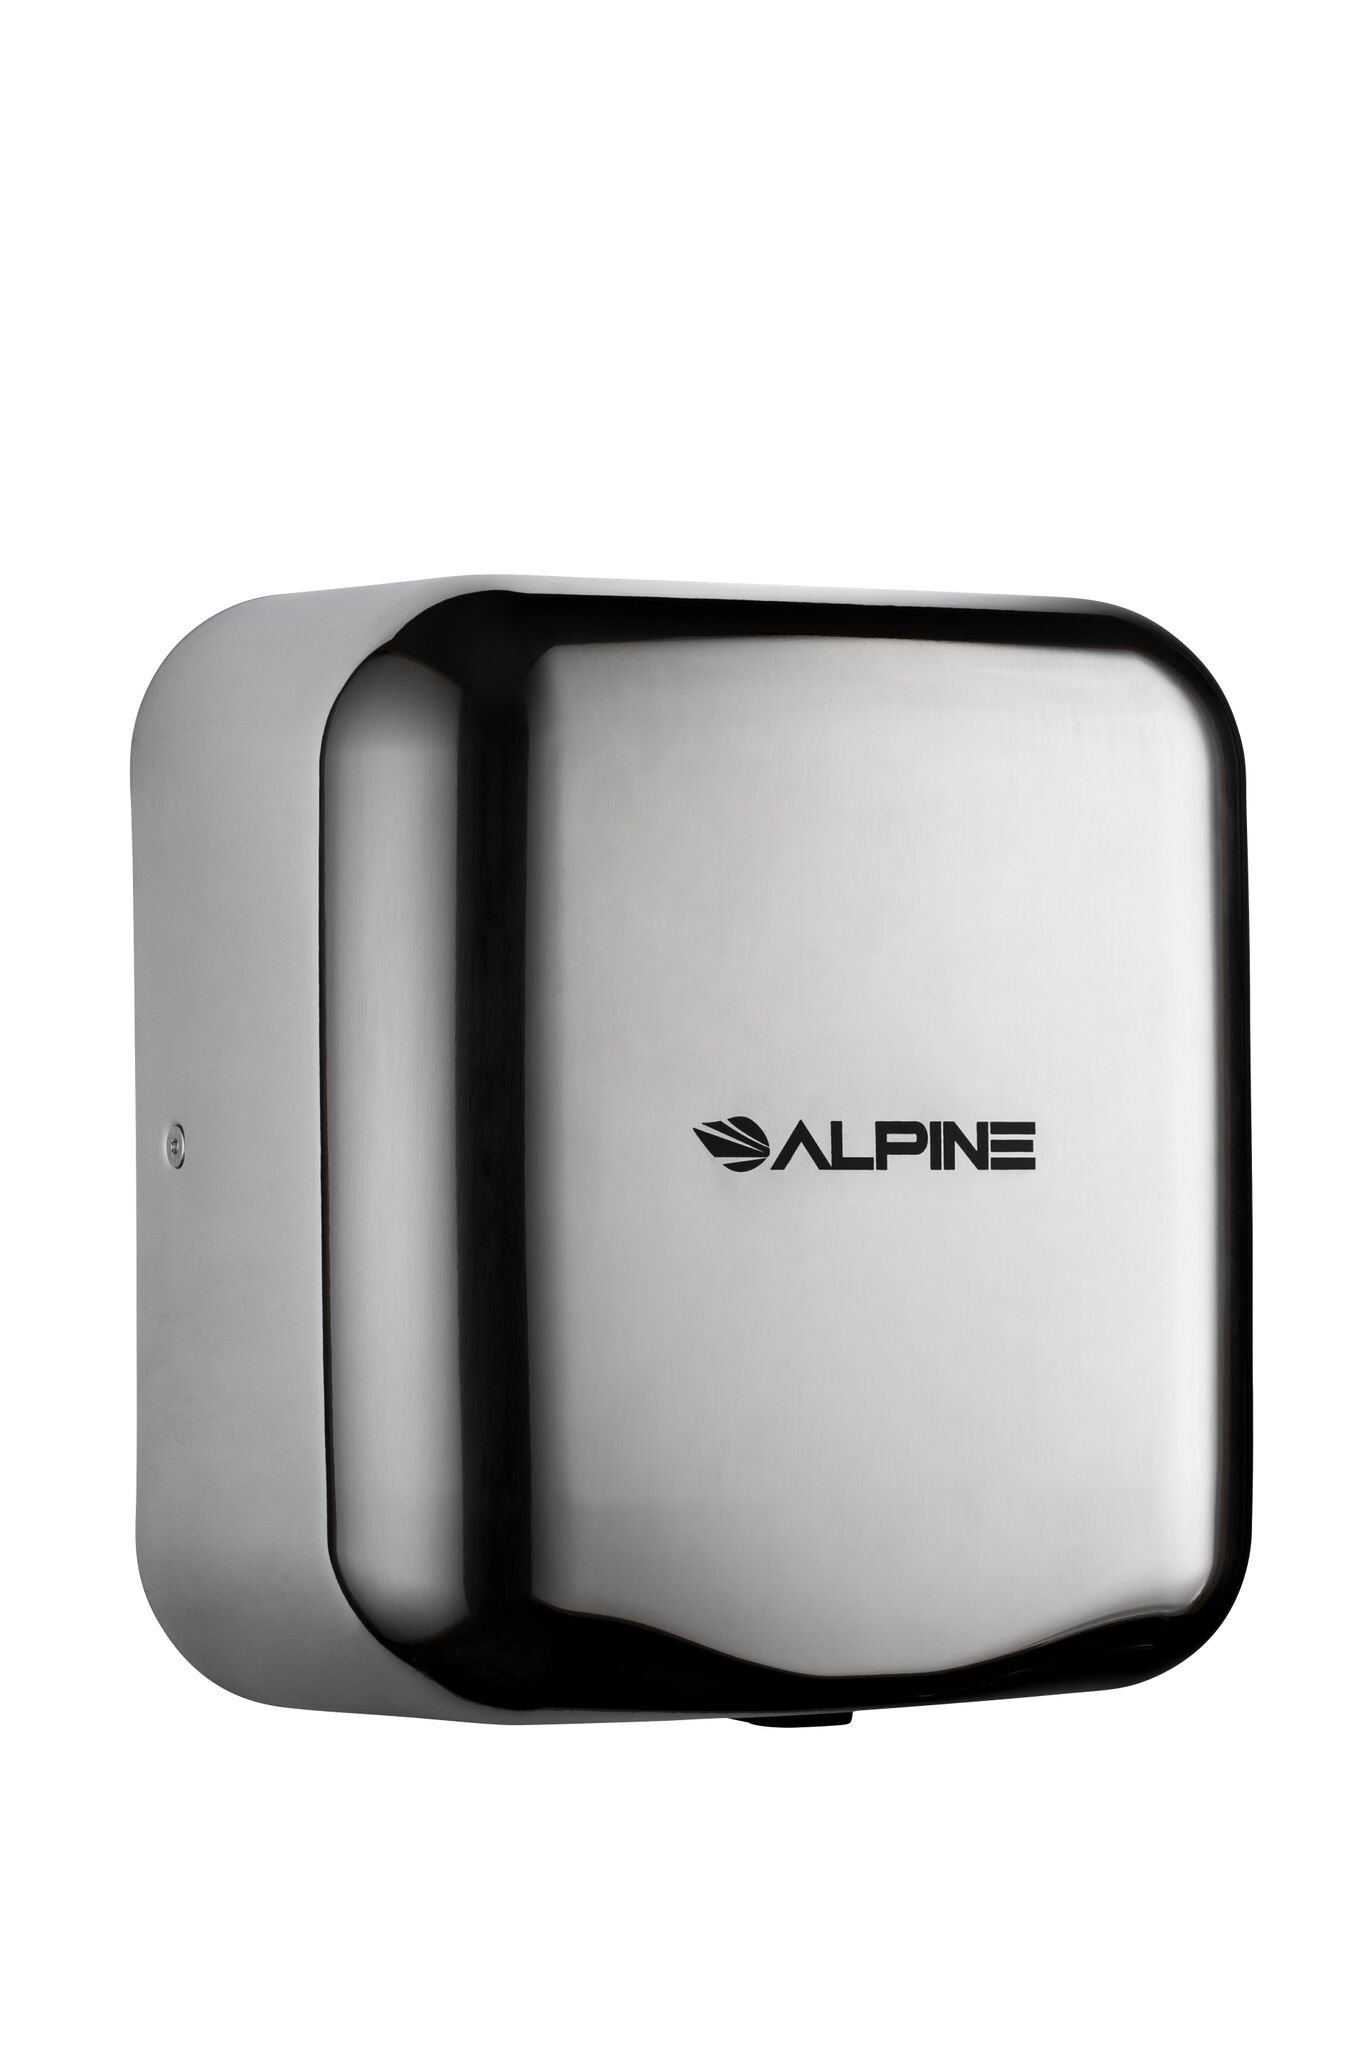 Alpine Hemlock Heavy Duty, Commercial, 1800 Watts, 220-240 Volts, High Speed, Stainless Steel, Automatic Hot Hand Dryer - Stainless Steel Brushed